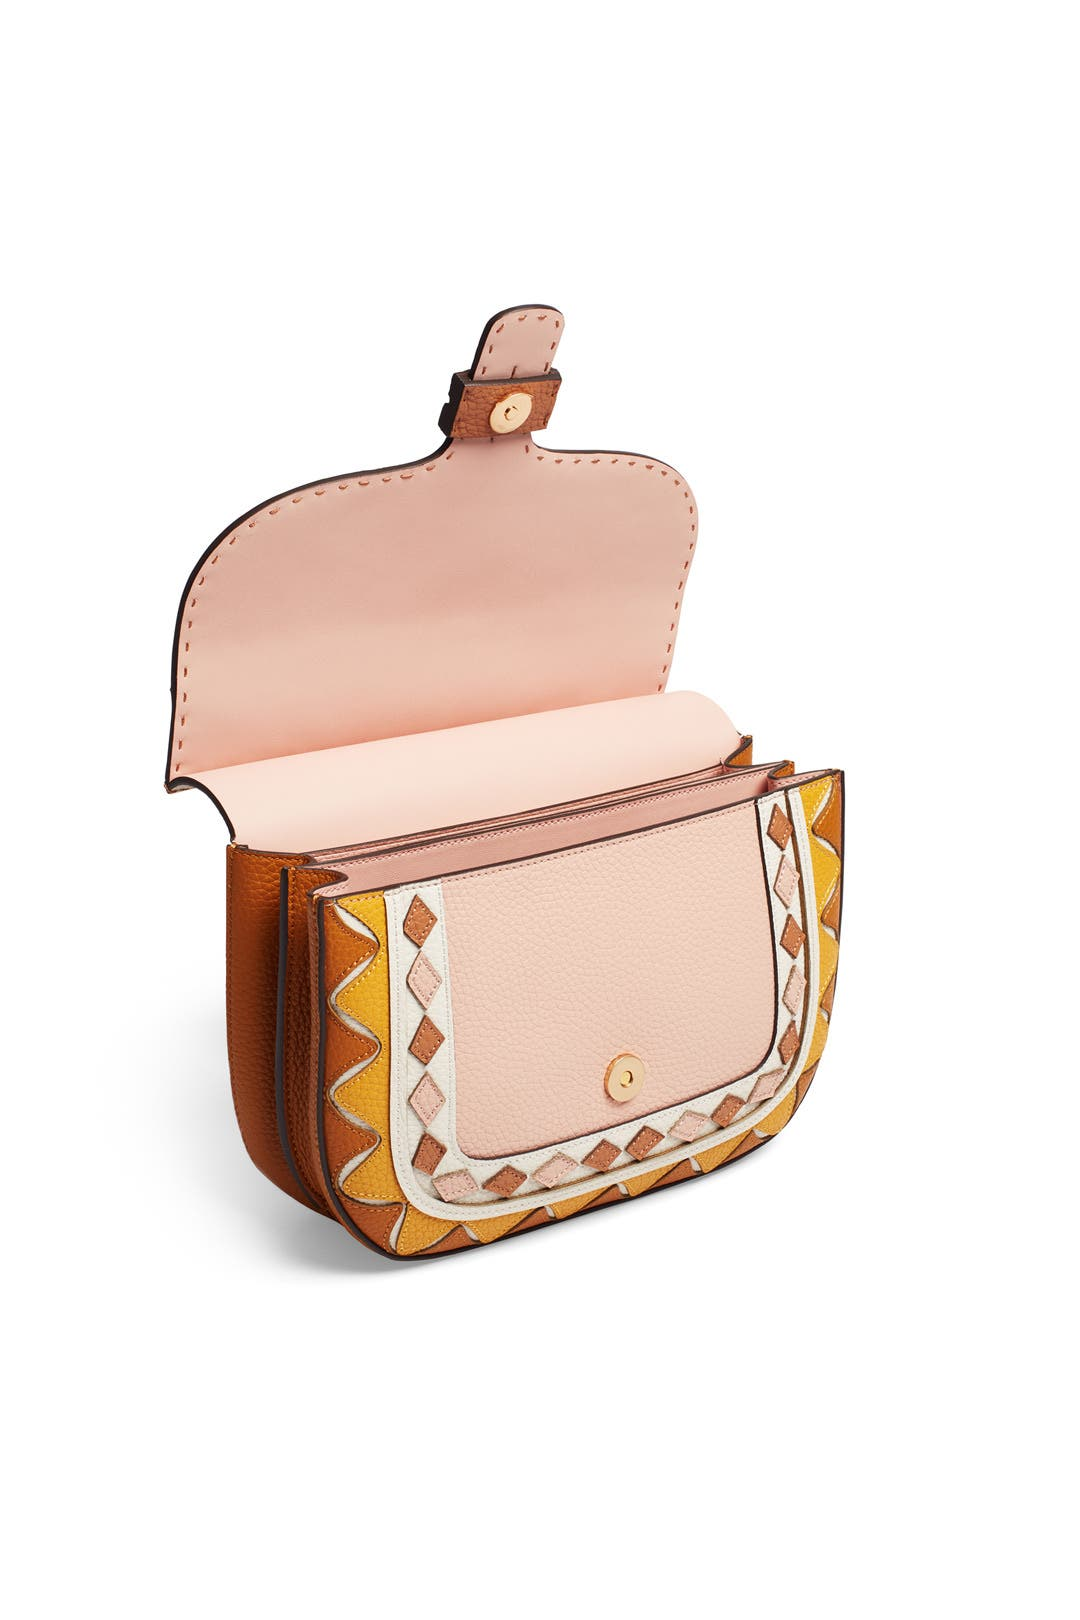 1d6e52b75f McGraw Patchwork Satchel by Tory Burch Accessories for $80 | Rent the Runway